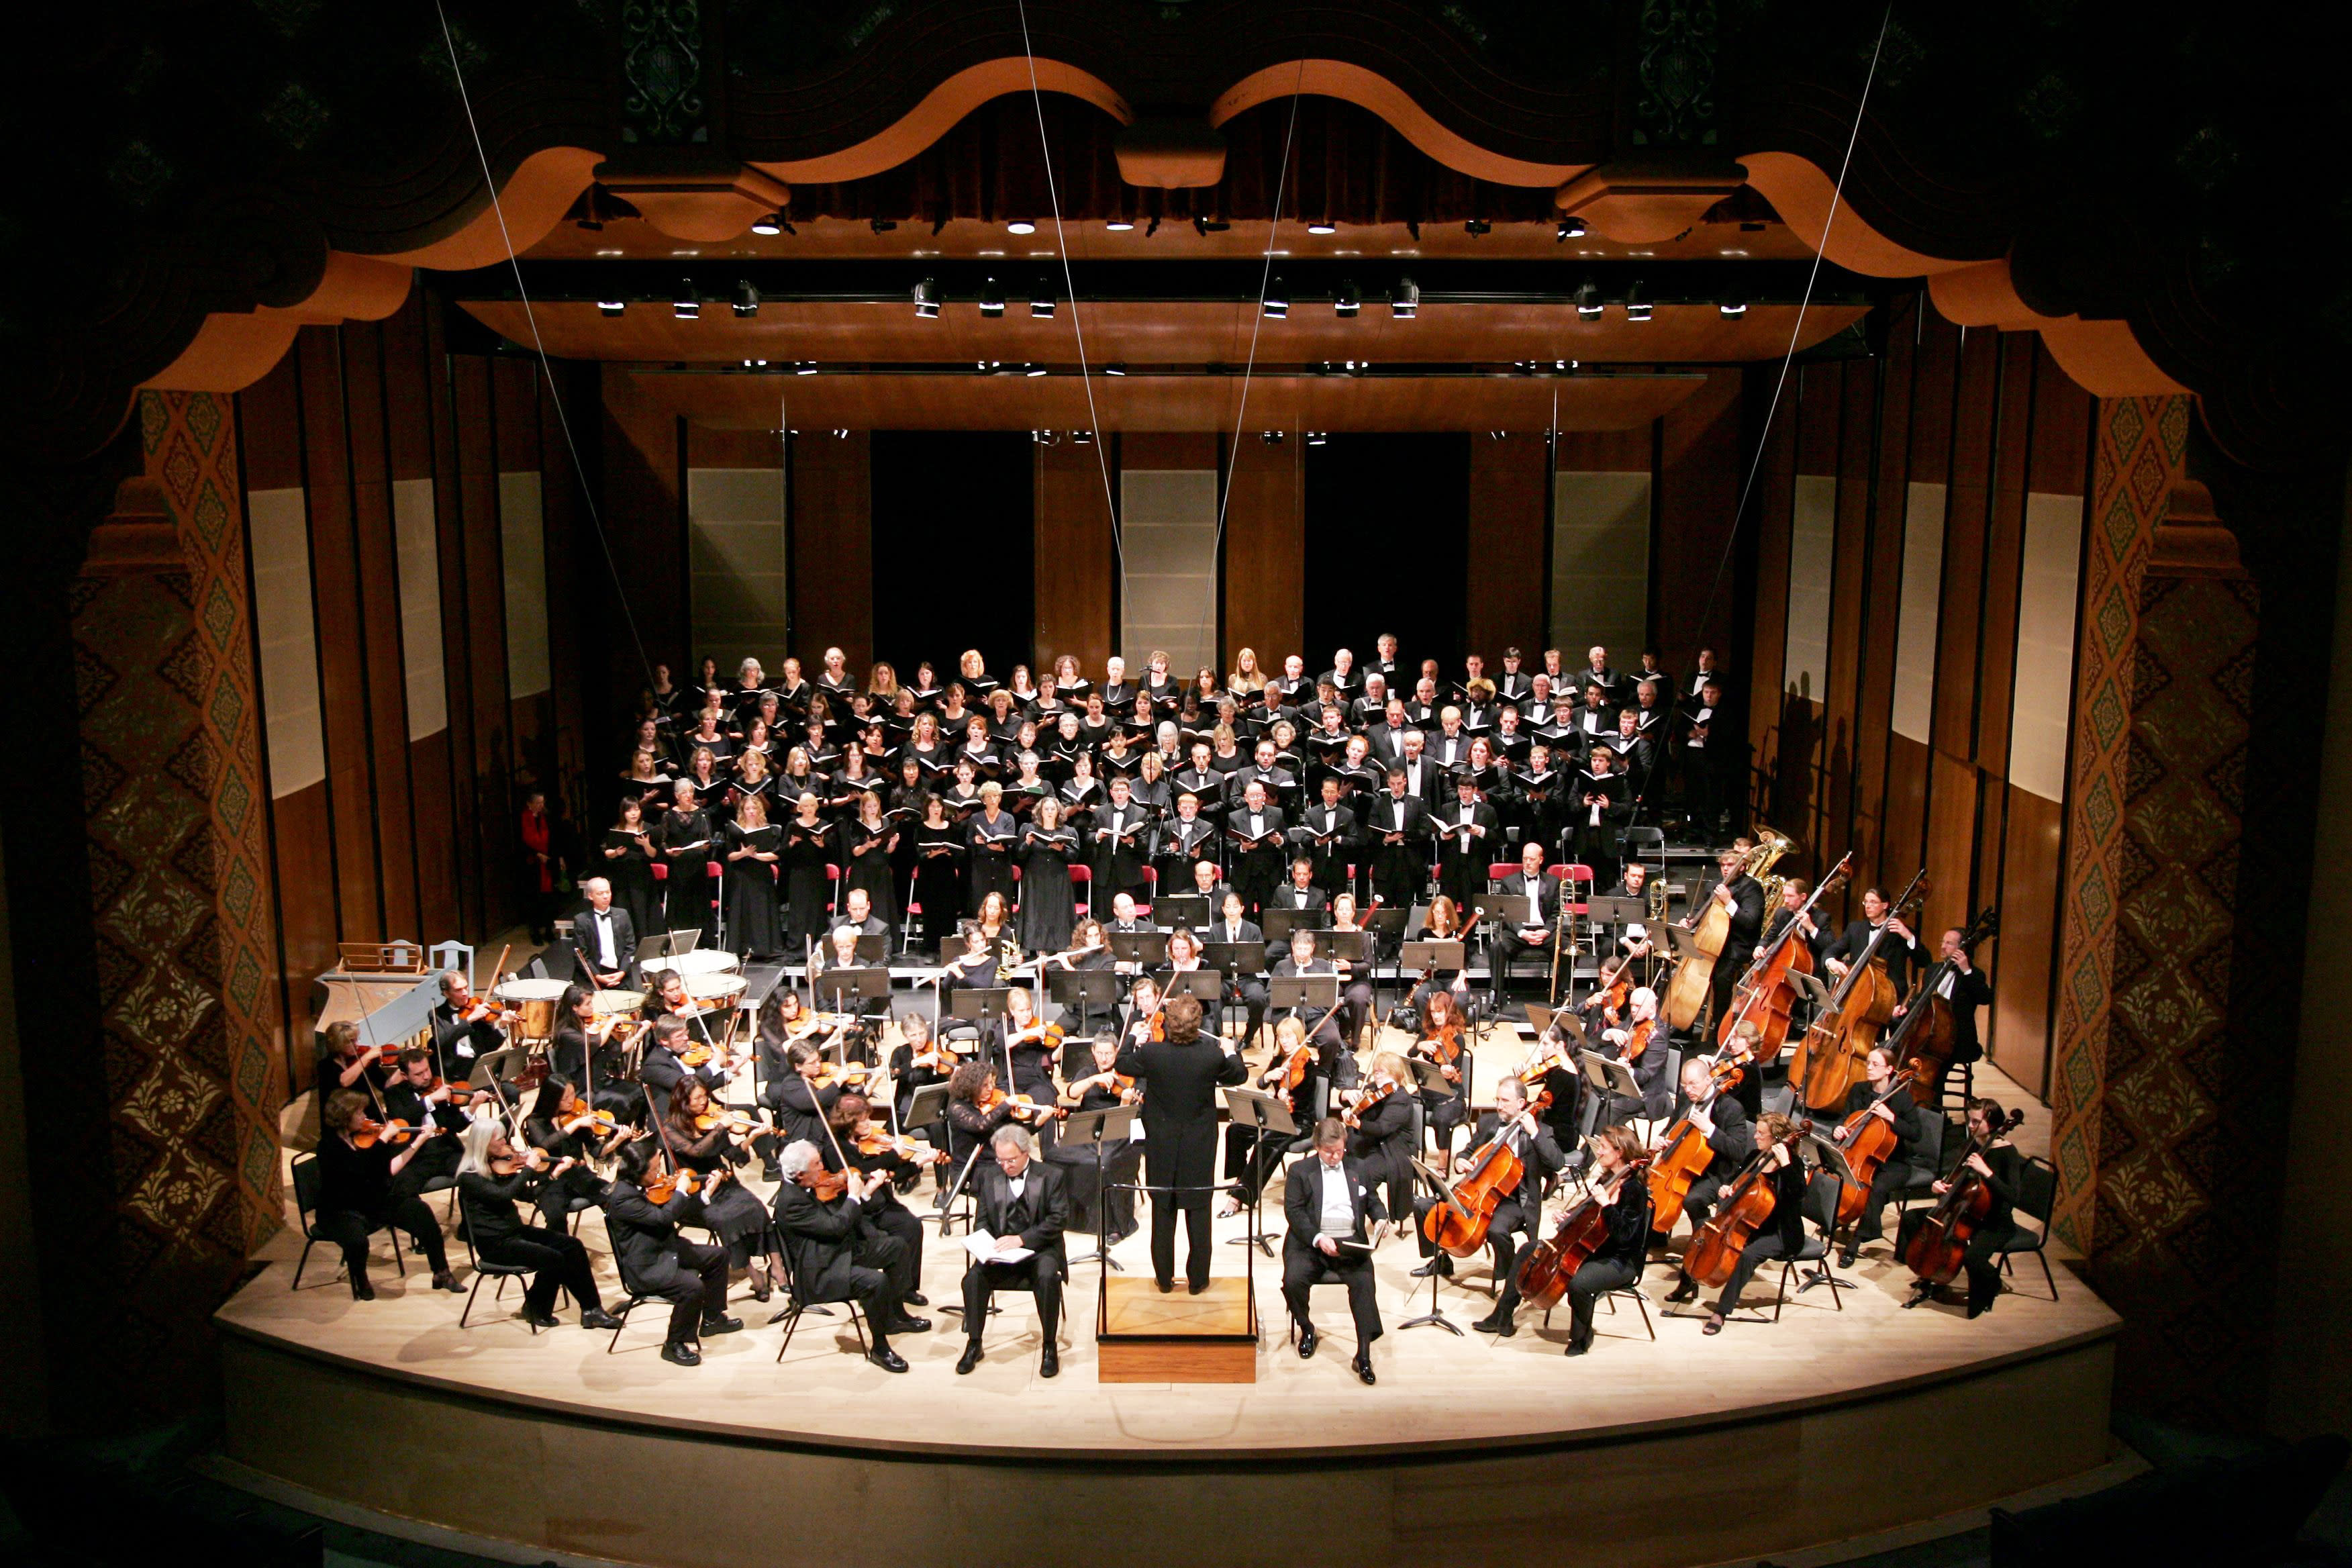 It takes a village, or at least a whole chorus, to bring Handel's Messiah to the stage of the Lensic in Santa Fe.